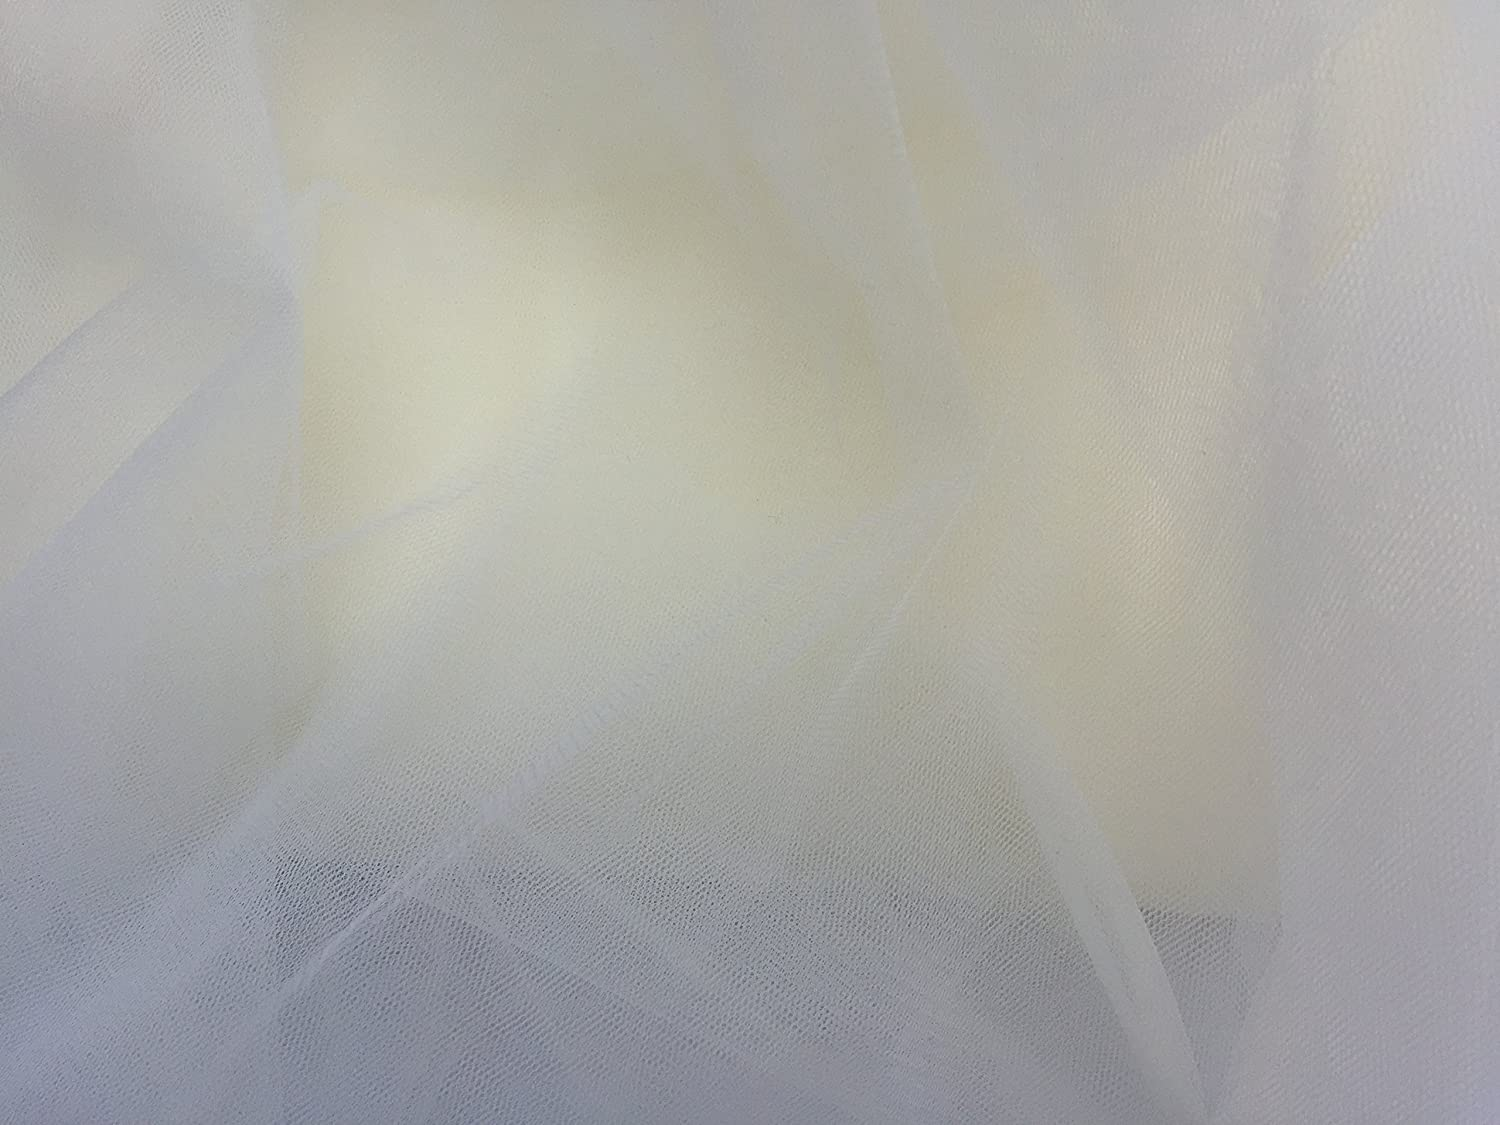 Ivory Off White bridal tulle veil fabric 300cm wide by the metre fine net